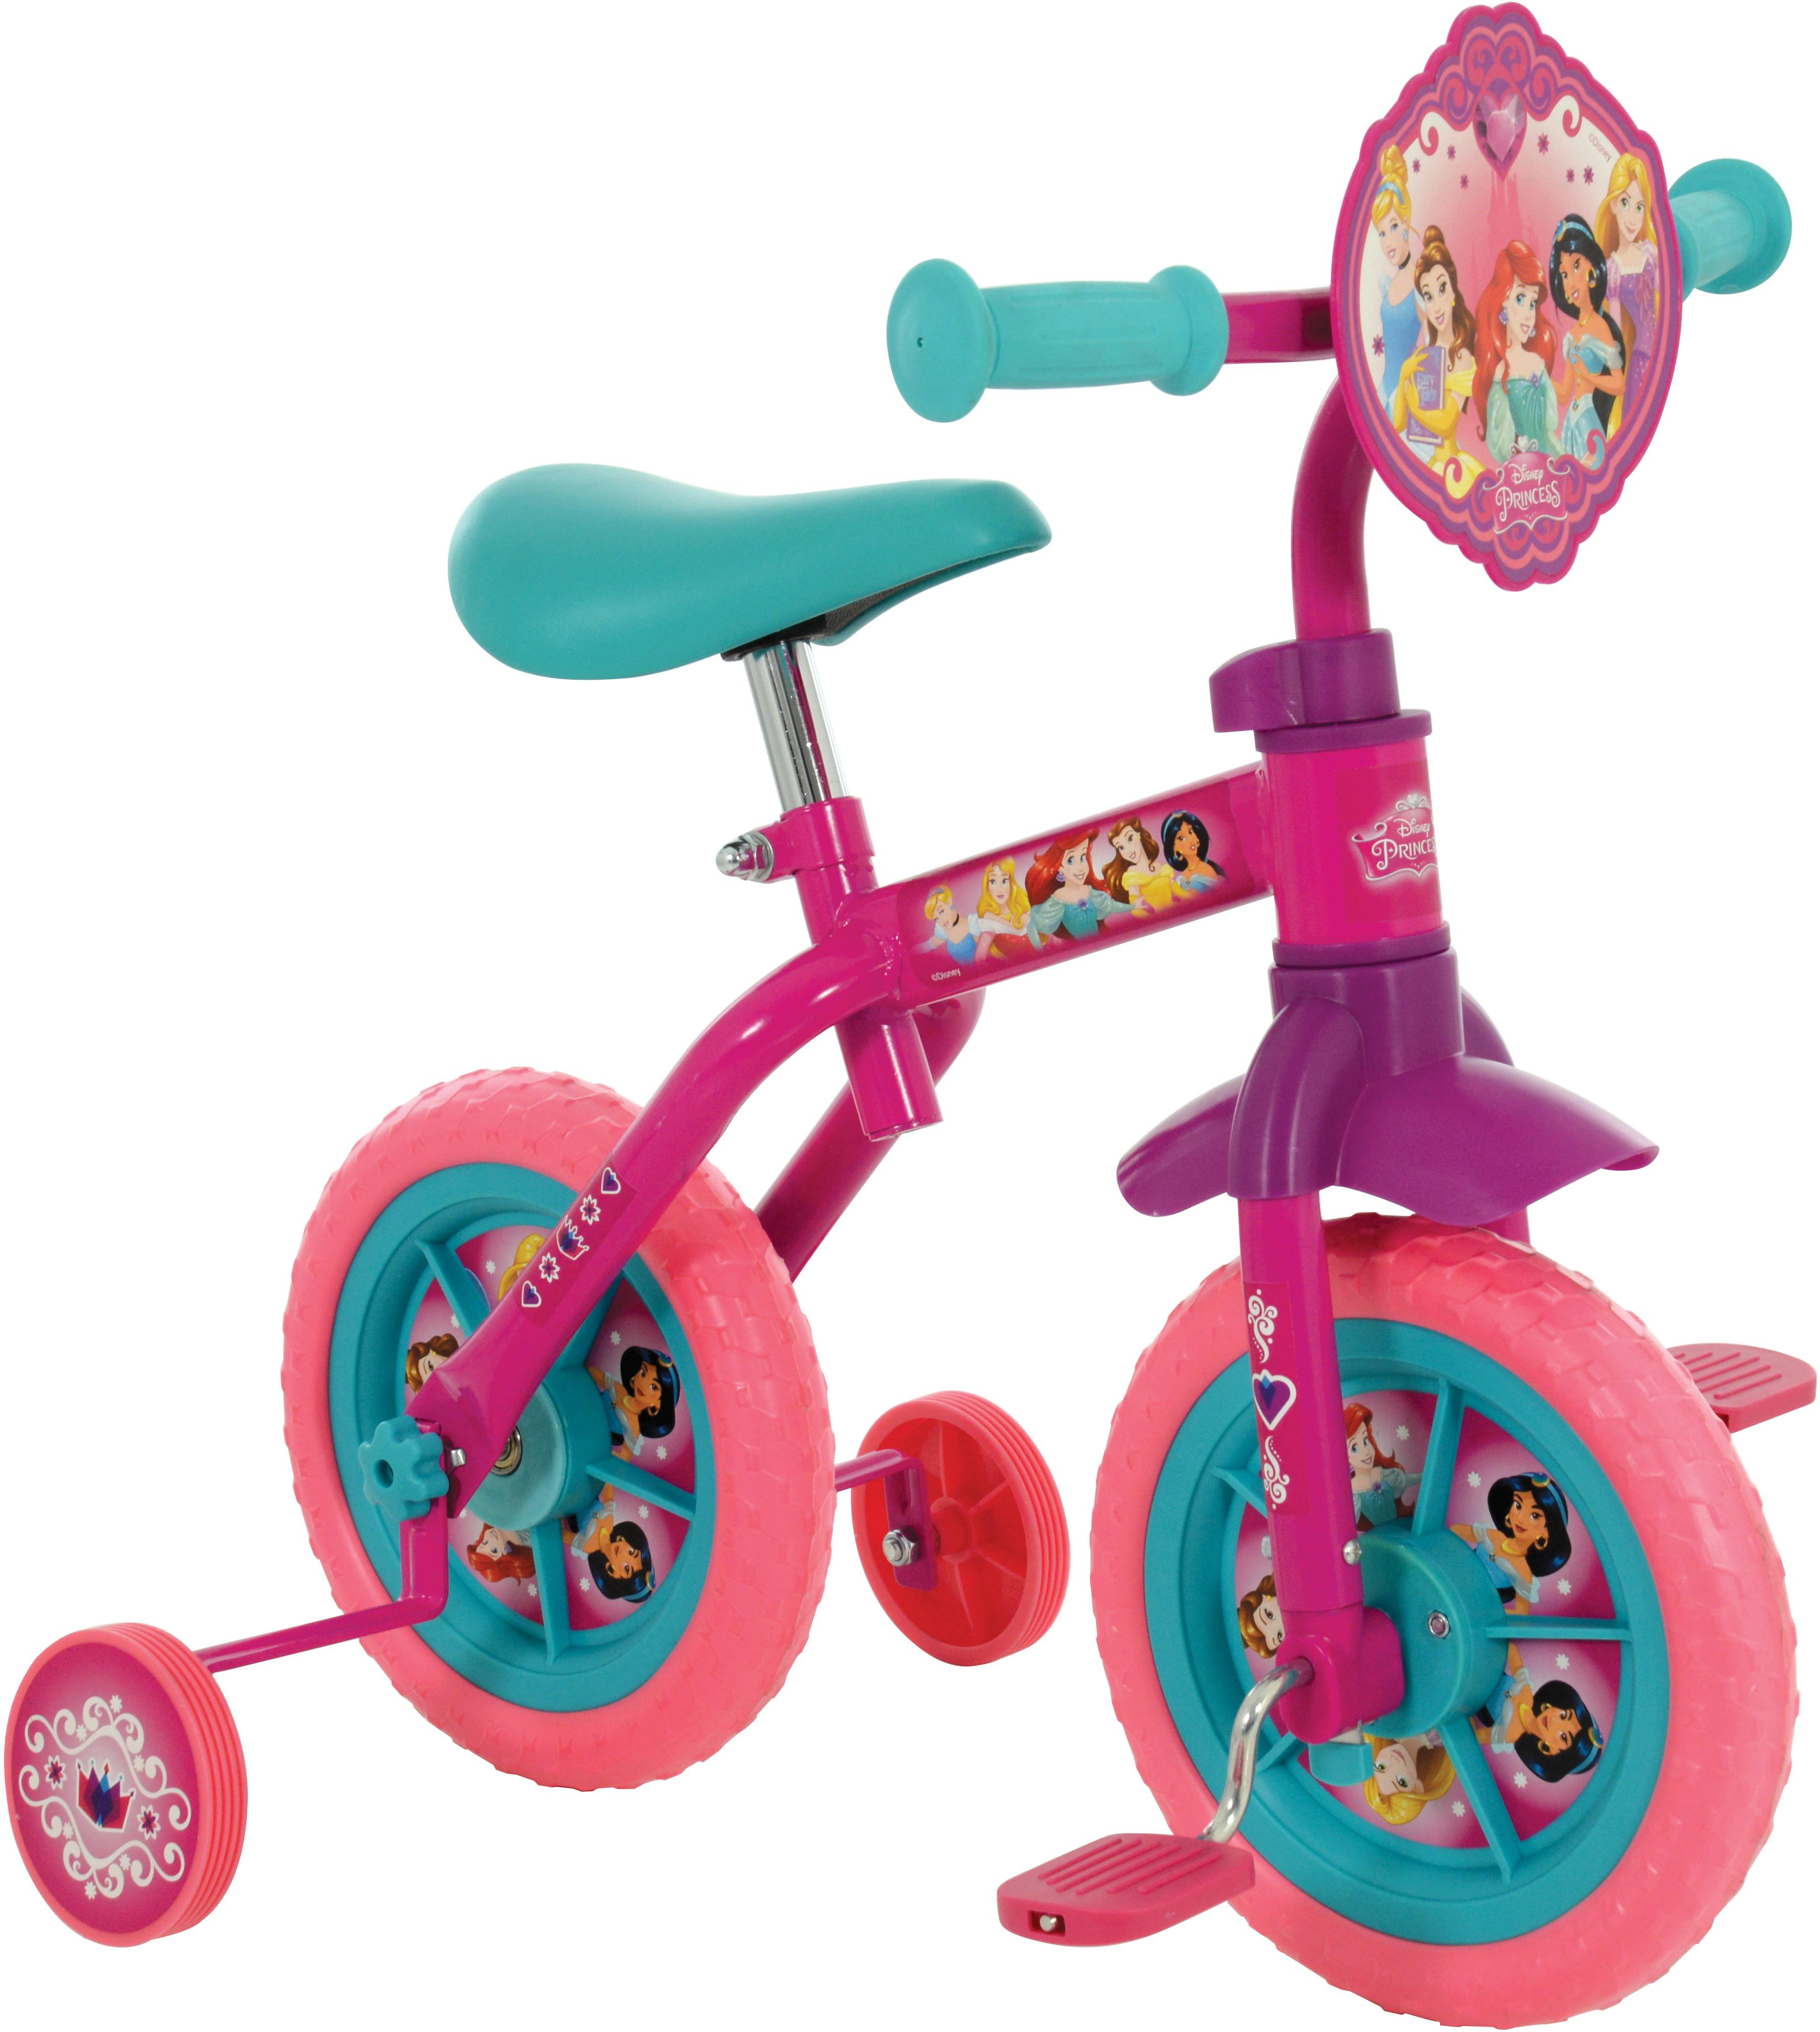 Disney Princess 2in1 Training Bike - 10 inch Wheel